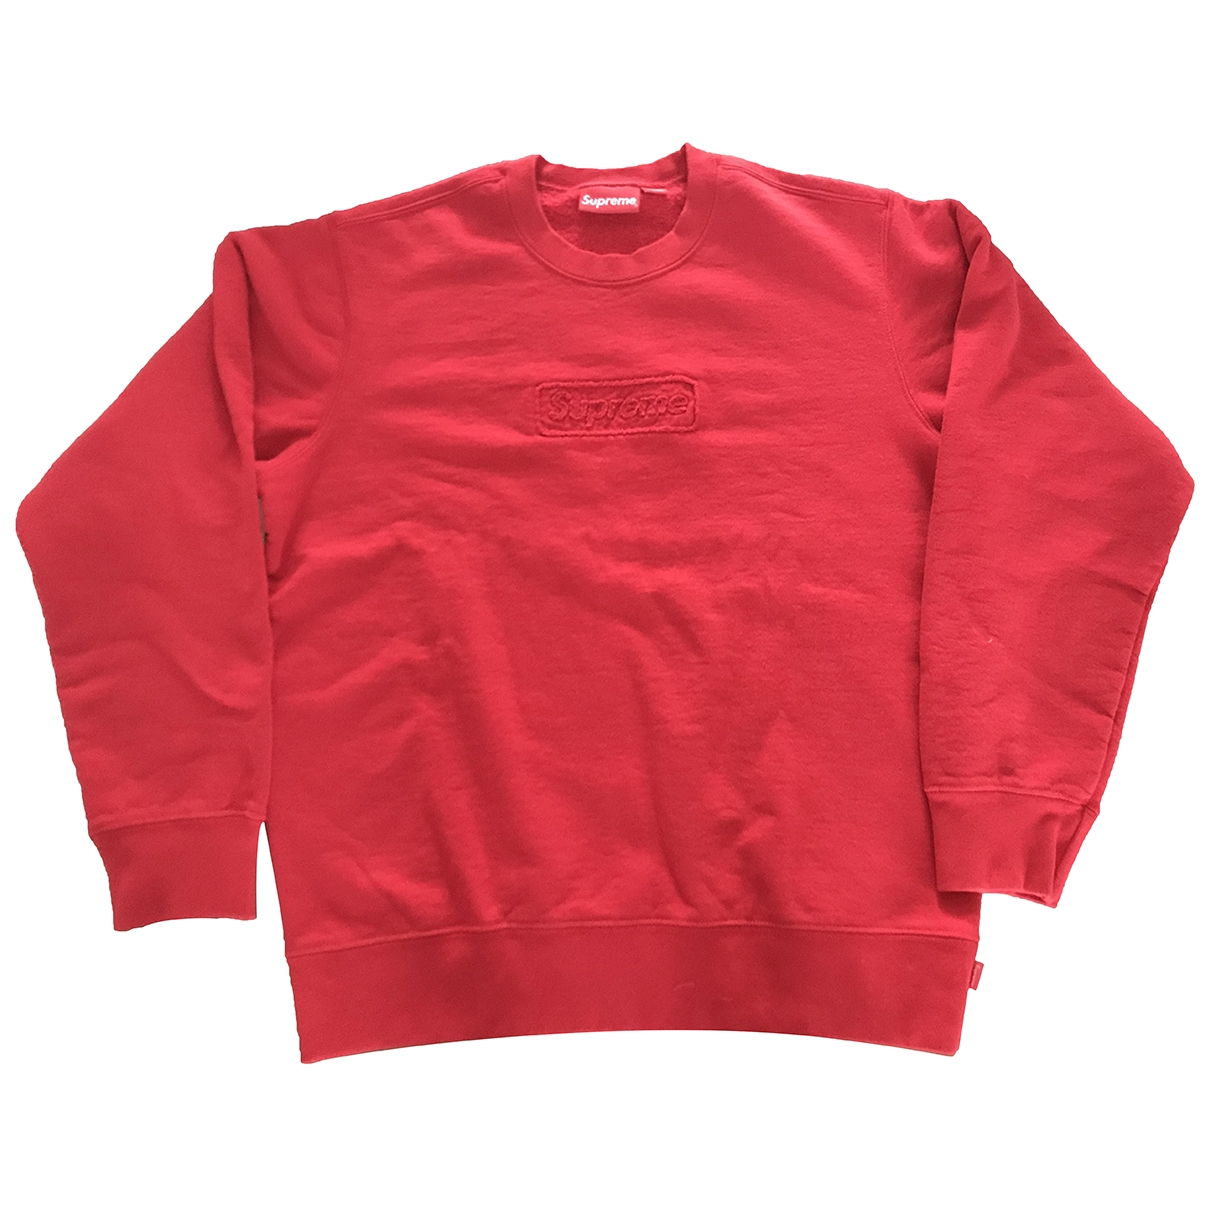 Supreme \N Red Cotton Knitwear & Sweatshirts for Men M International